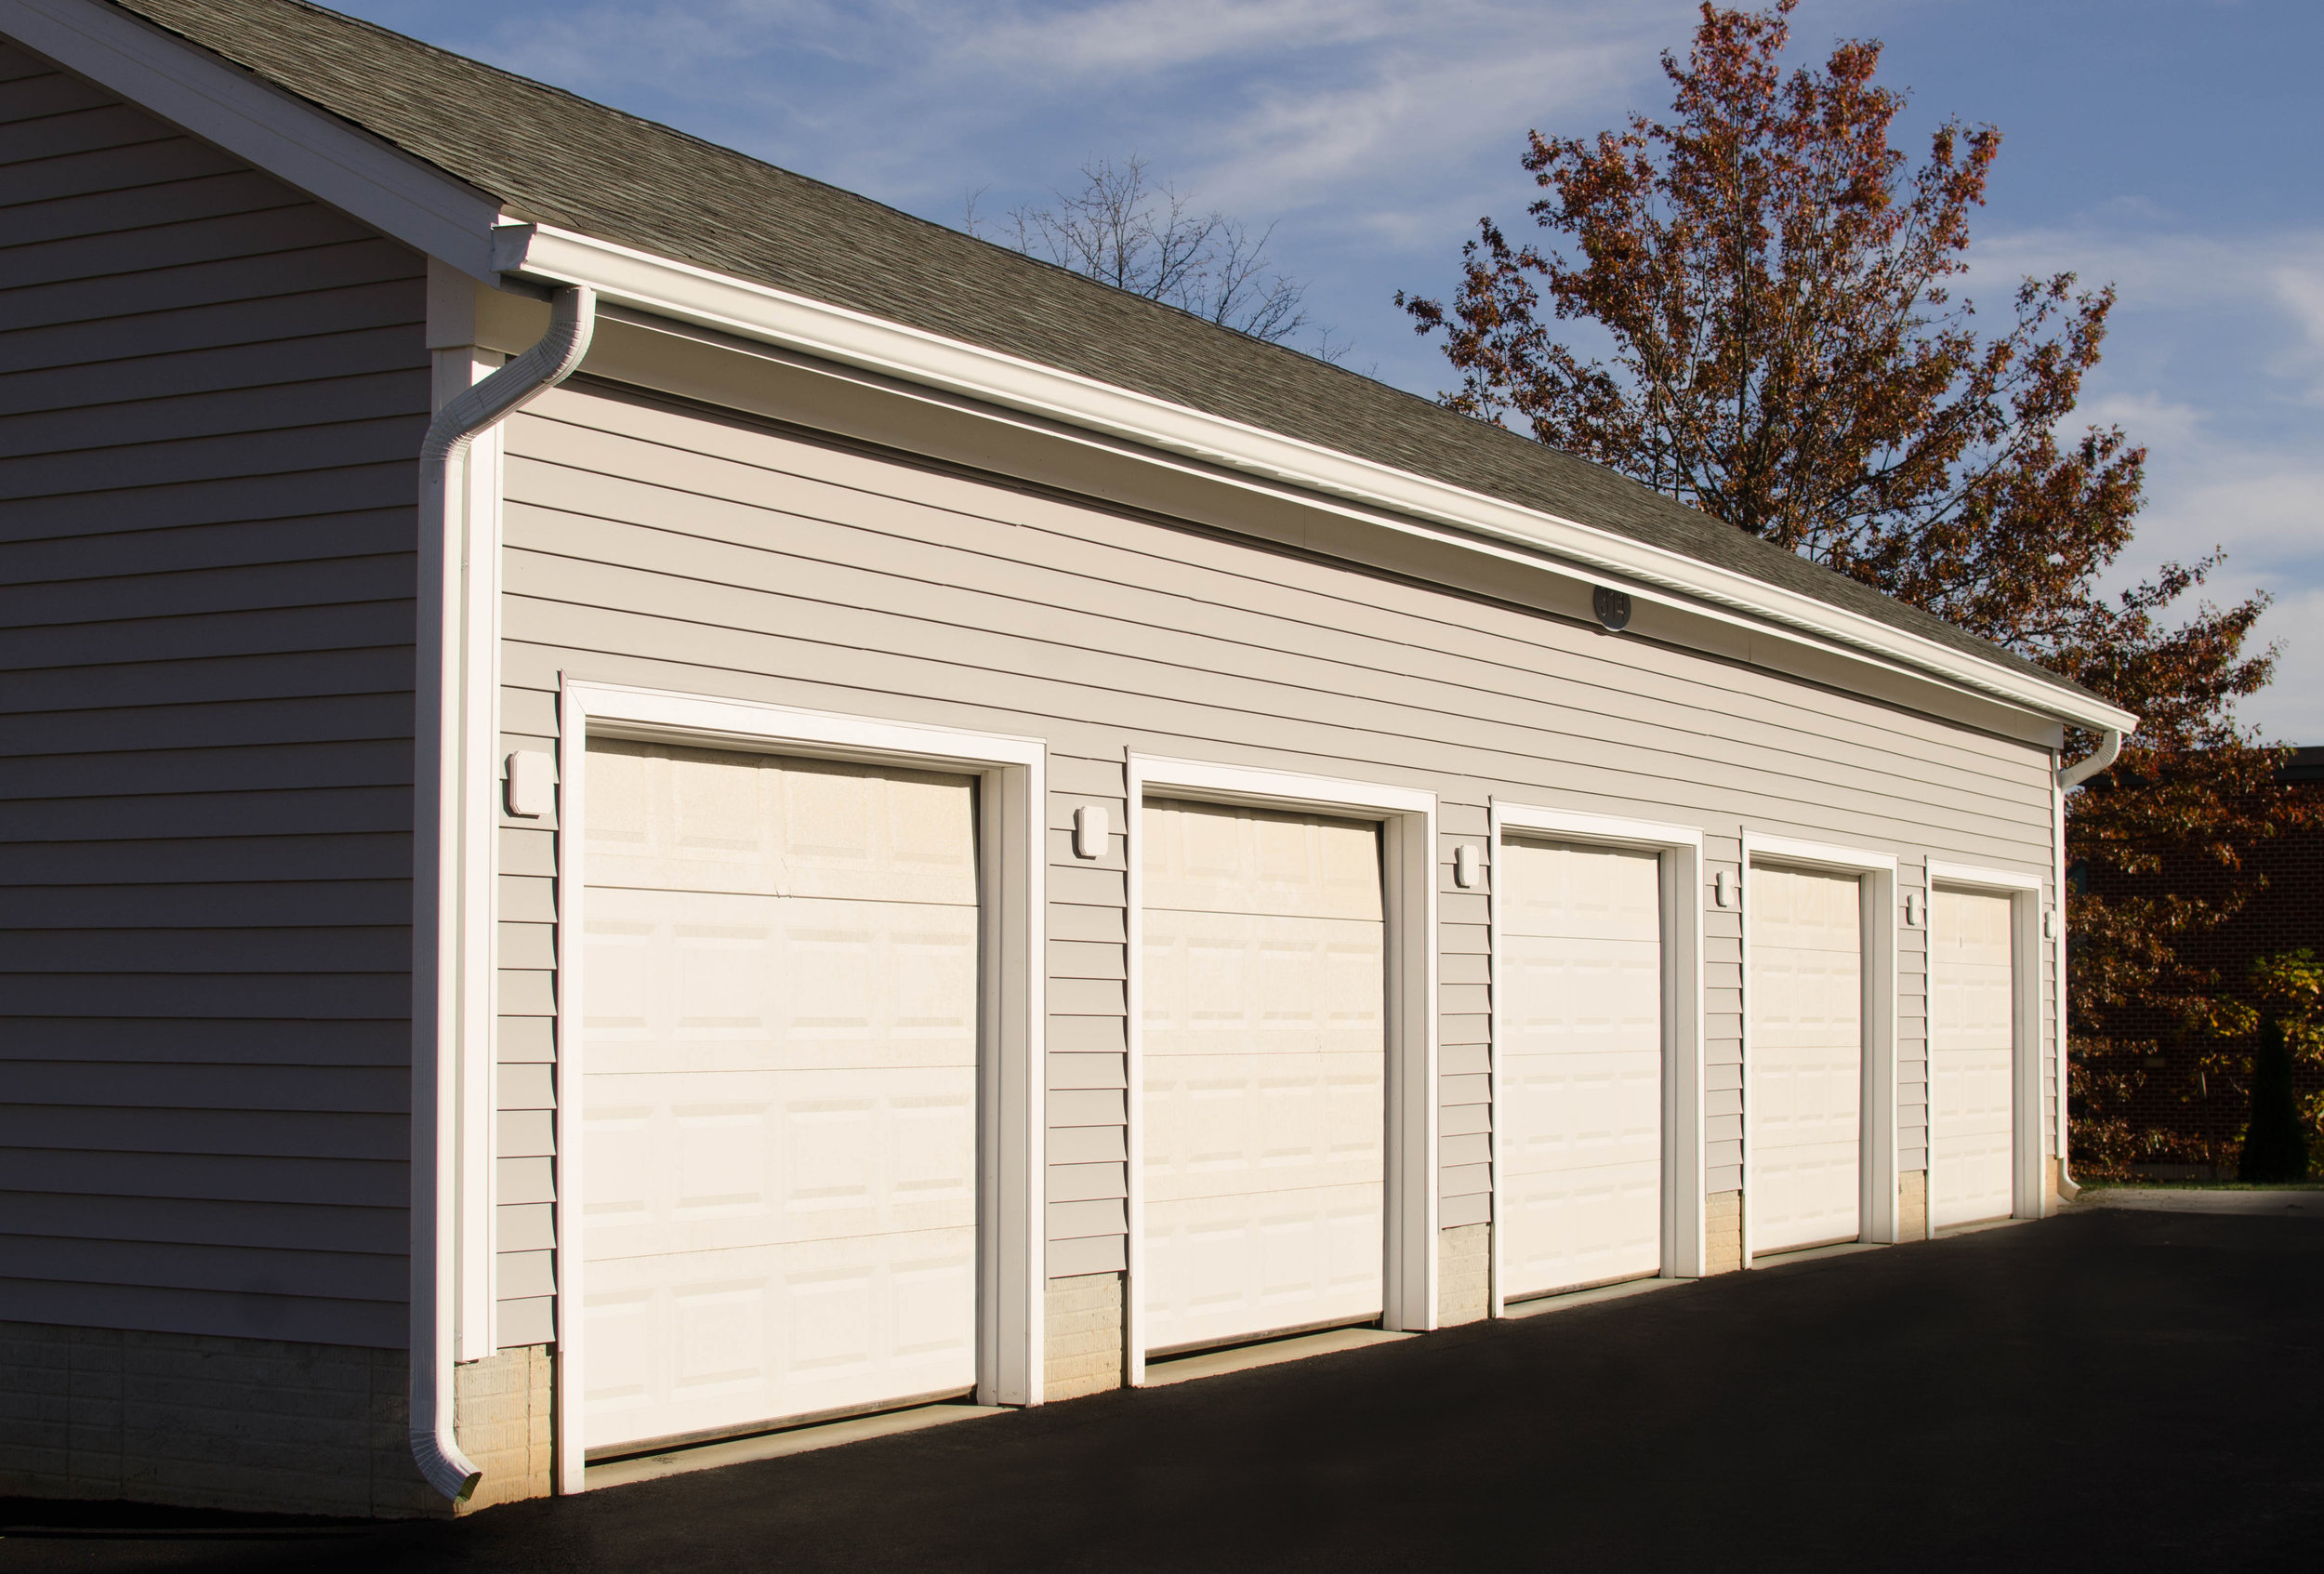 Detached Garages at Avanti Luxury Apartments